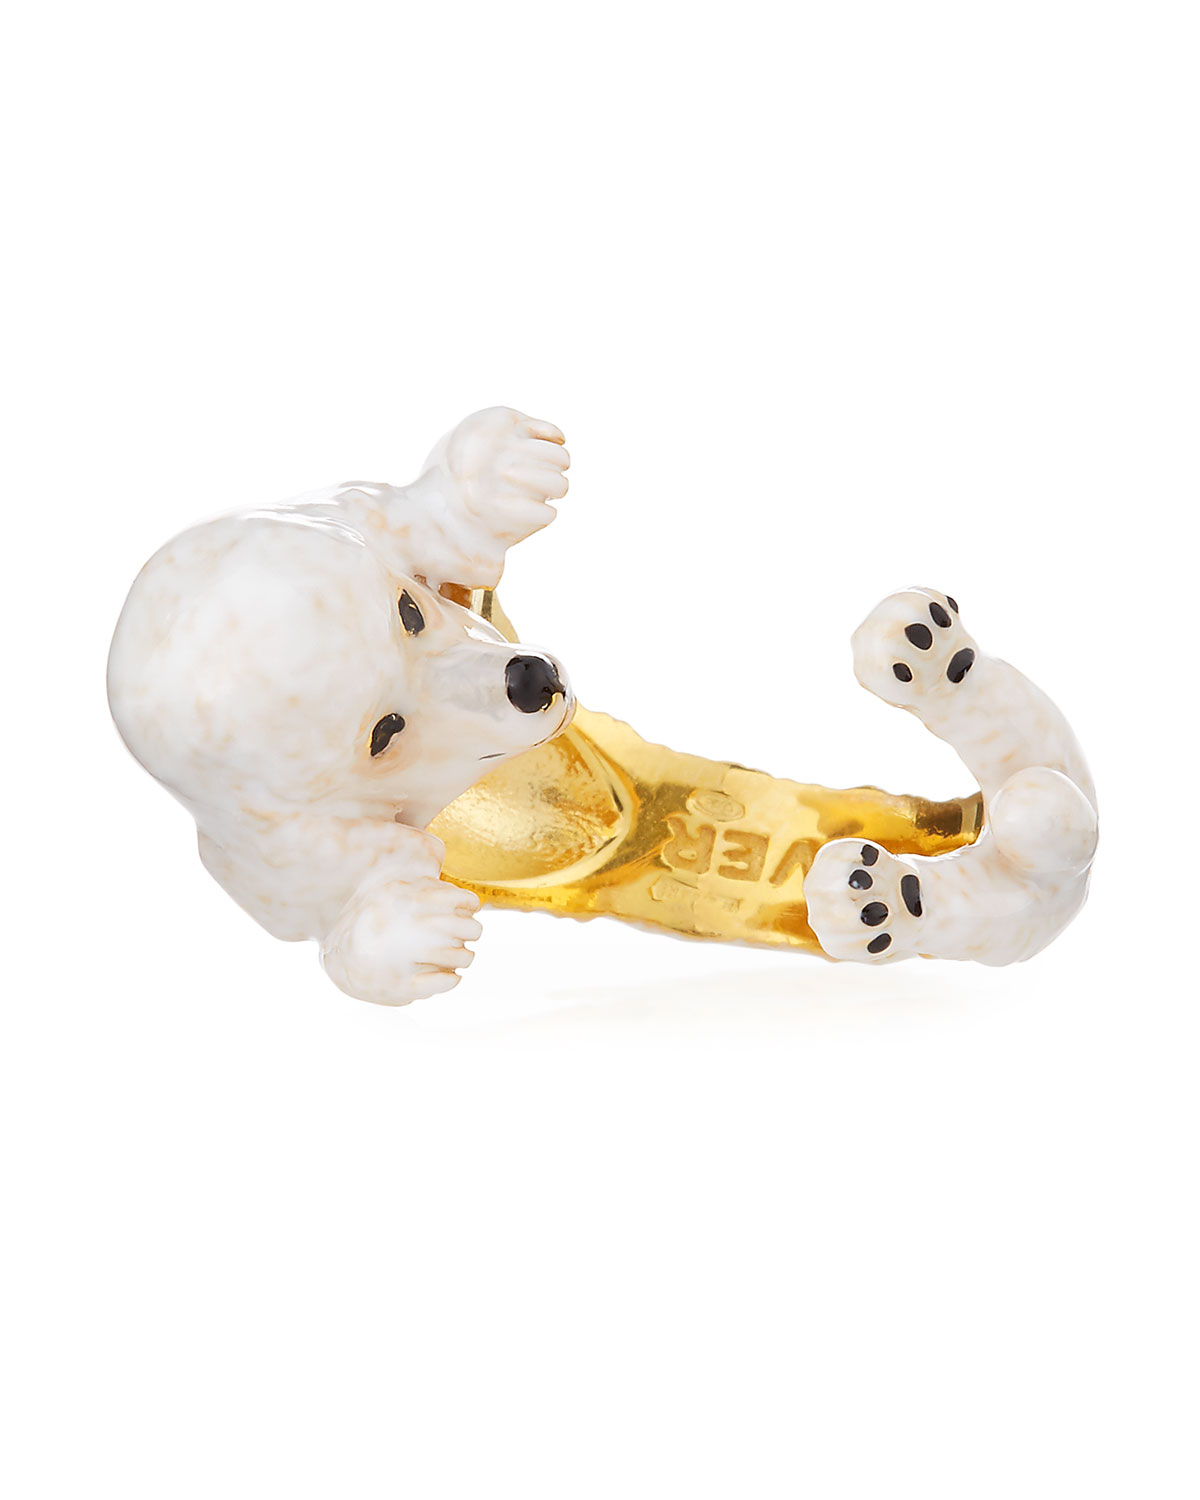 VISCONTI & DU REAU POODLE PLATED ENAMEL DOG HUG RING, SIZE 7